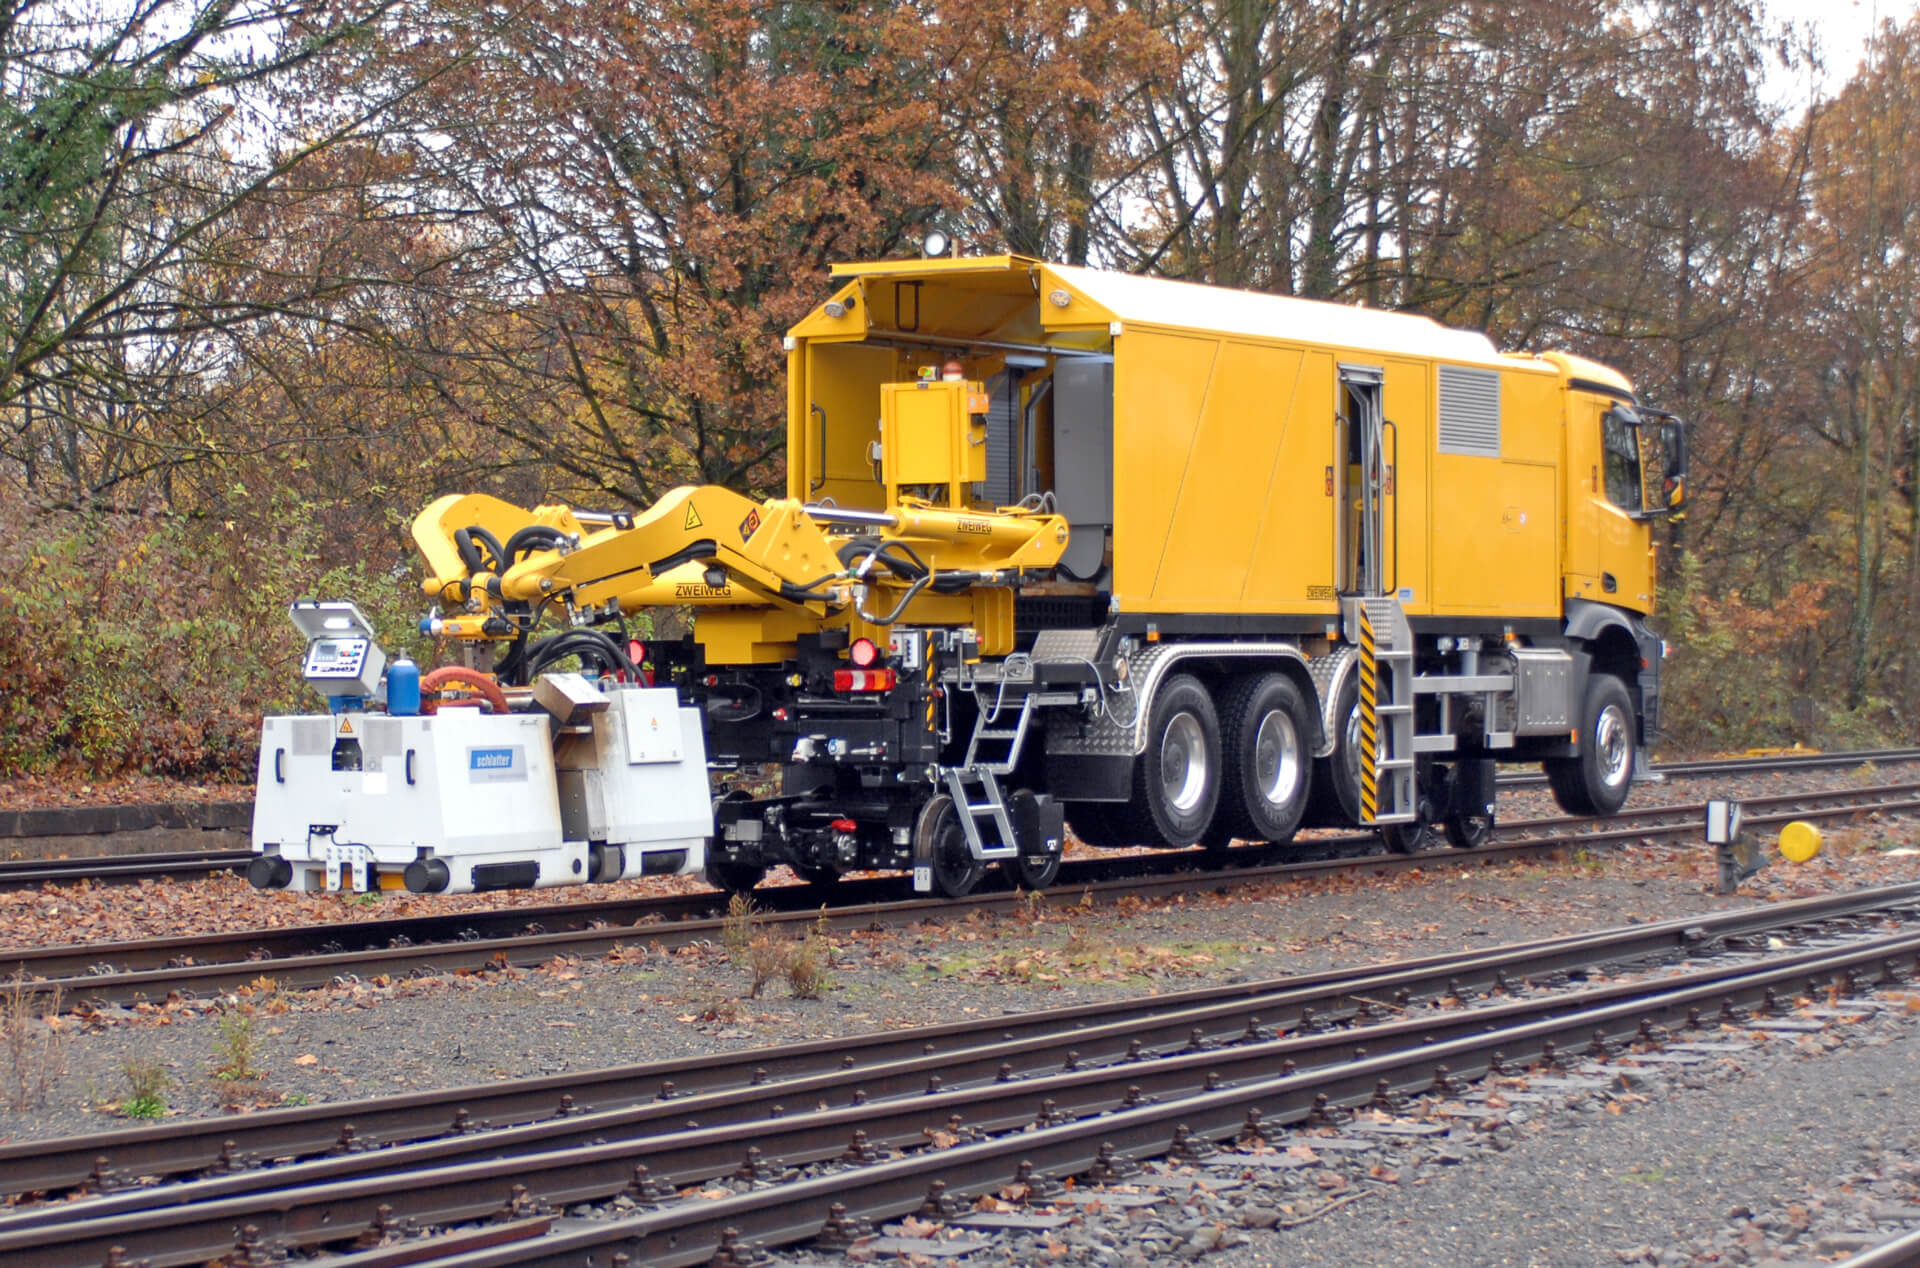 Truck based rail welding systems are self-propelled, they can work completely autonomously and they are very flexible for moving from one job site to the next